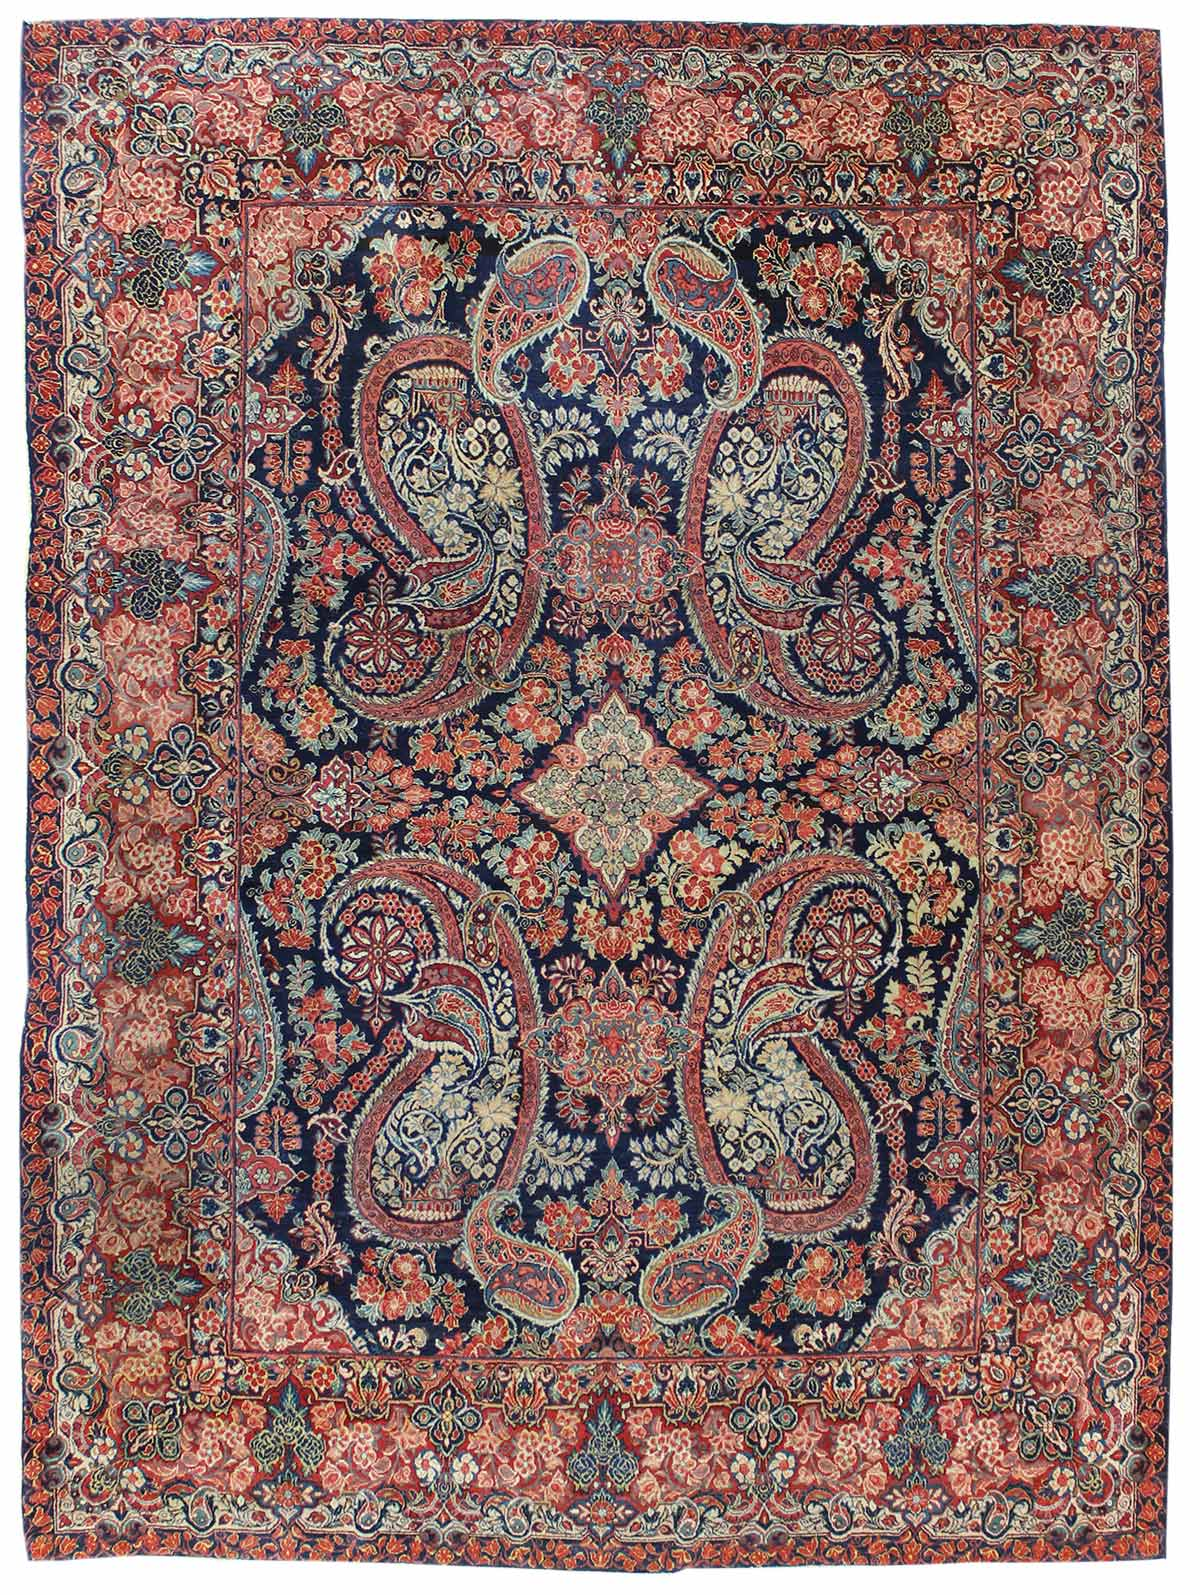 Antique Euro Sarouk Handwoven Traditional Rug